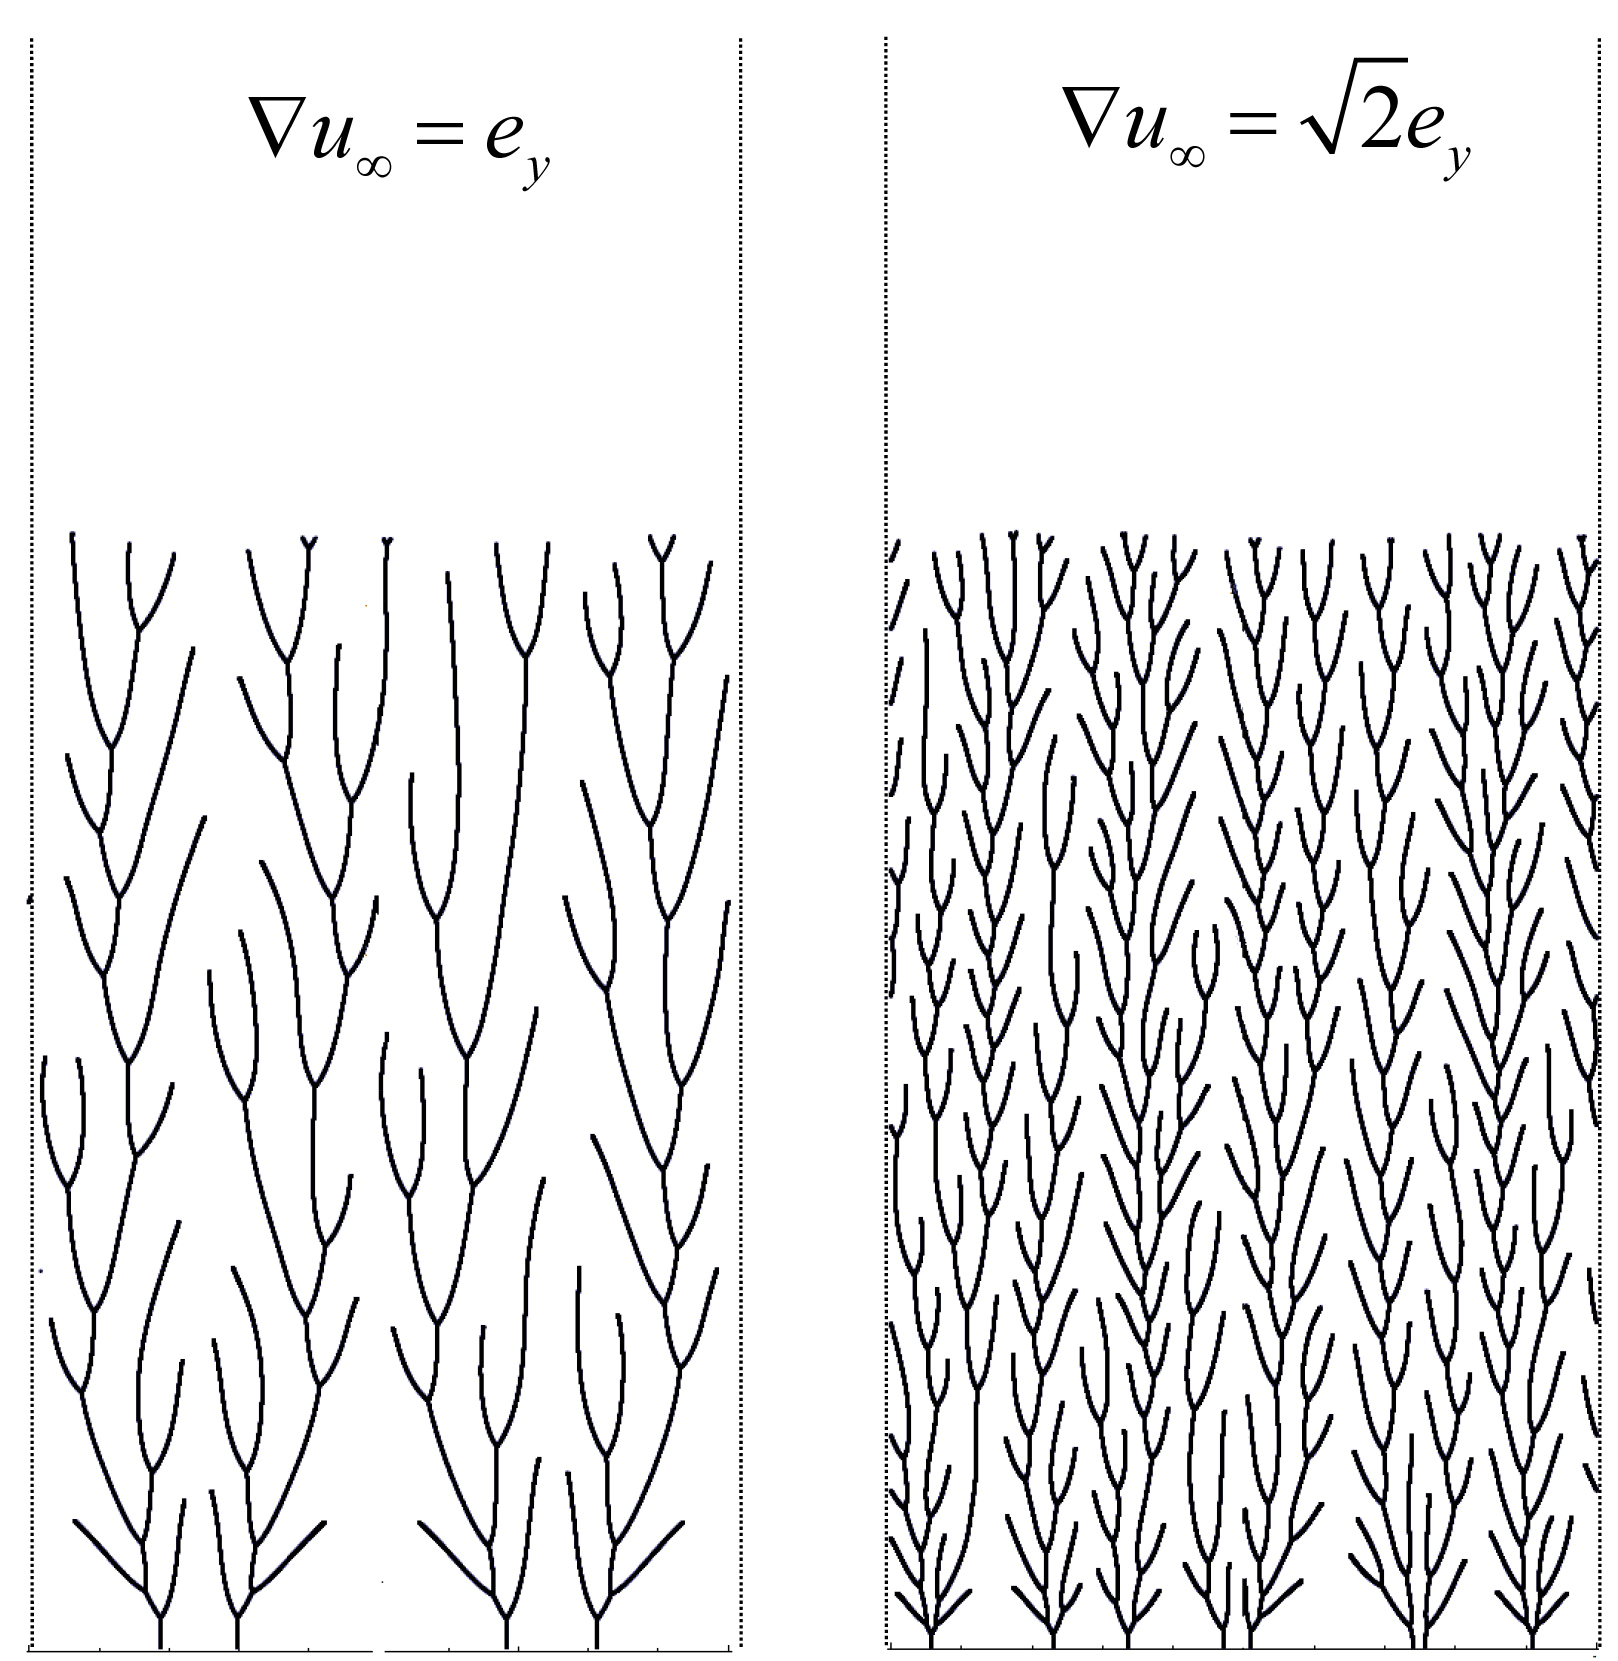 Growth patterns in a rectangular geometry for two different intensities of a driving field captured at the same moment in time. The complete evolution of the pattern is shown in a corresponding movie in the Supplementary Material